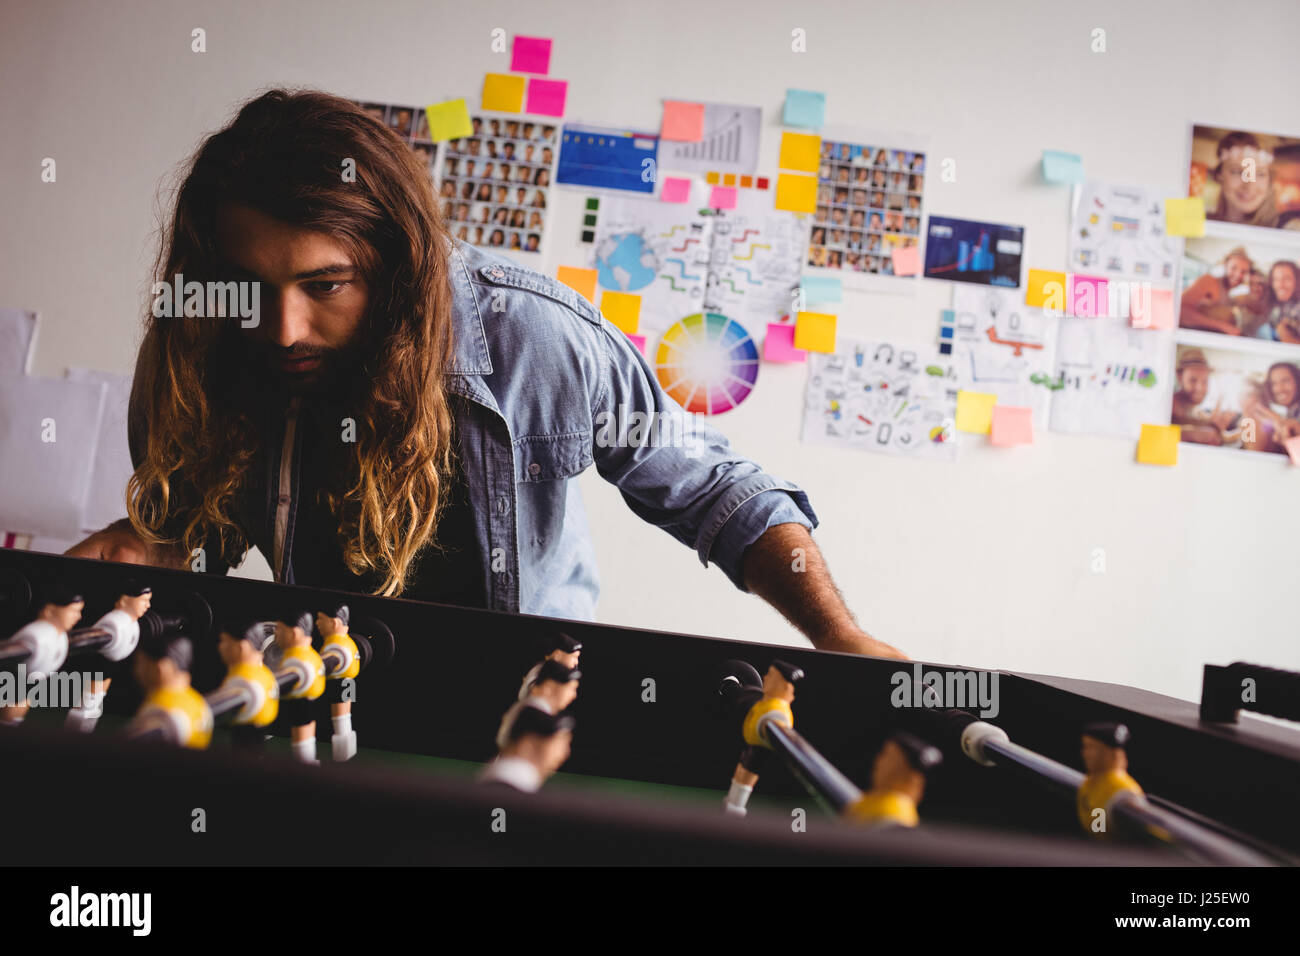 Concentrated man playing table football game - Stock Image